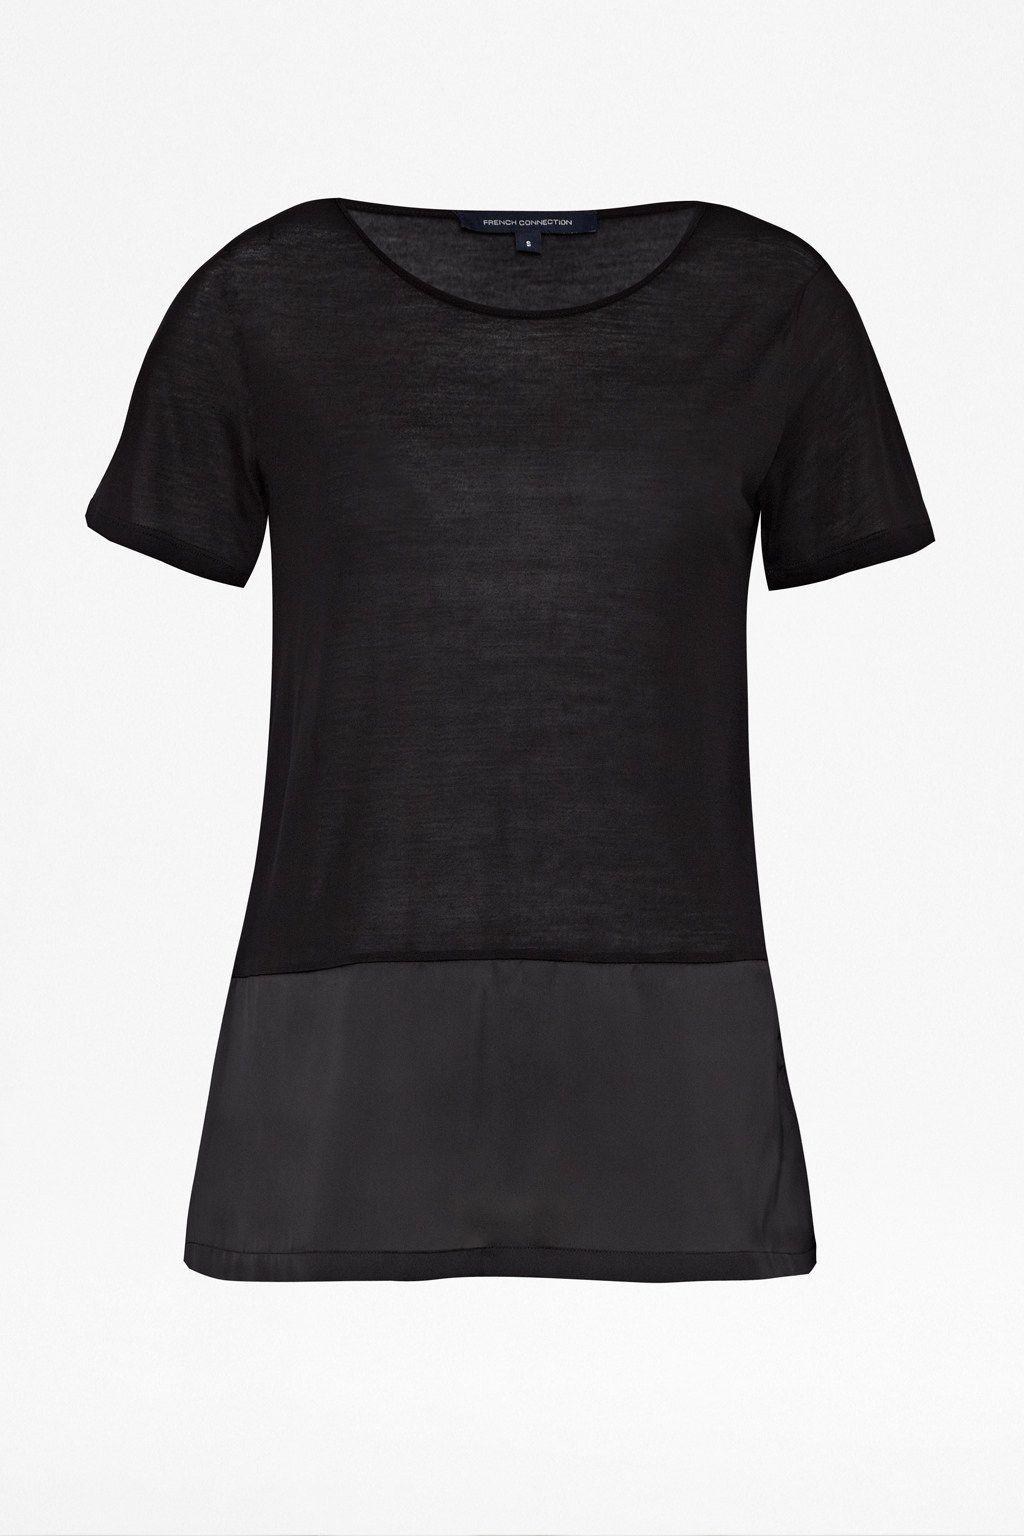 Polly plains satin short sleeve tshirt